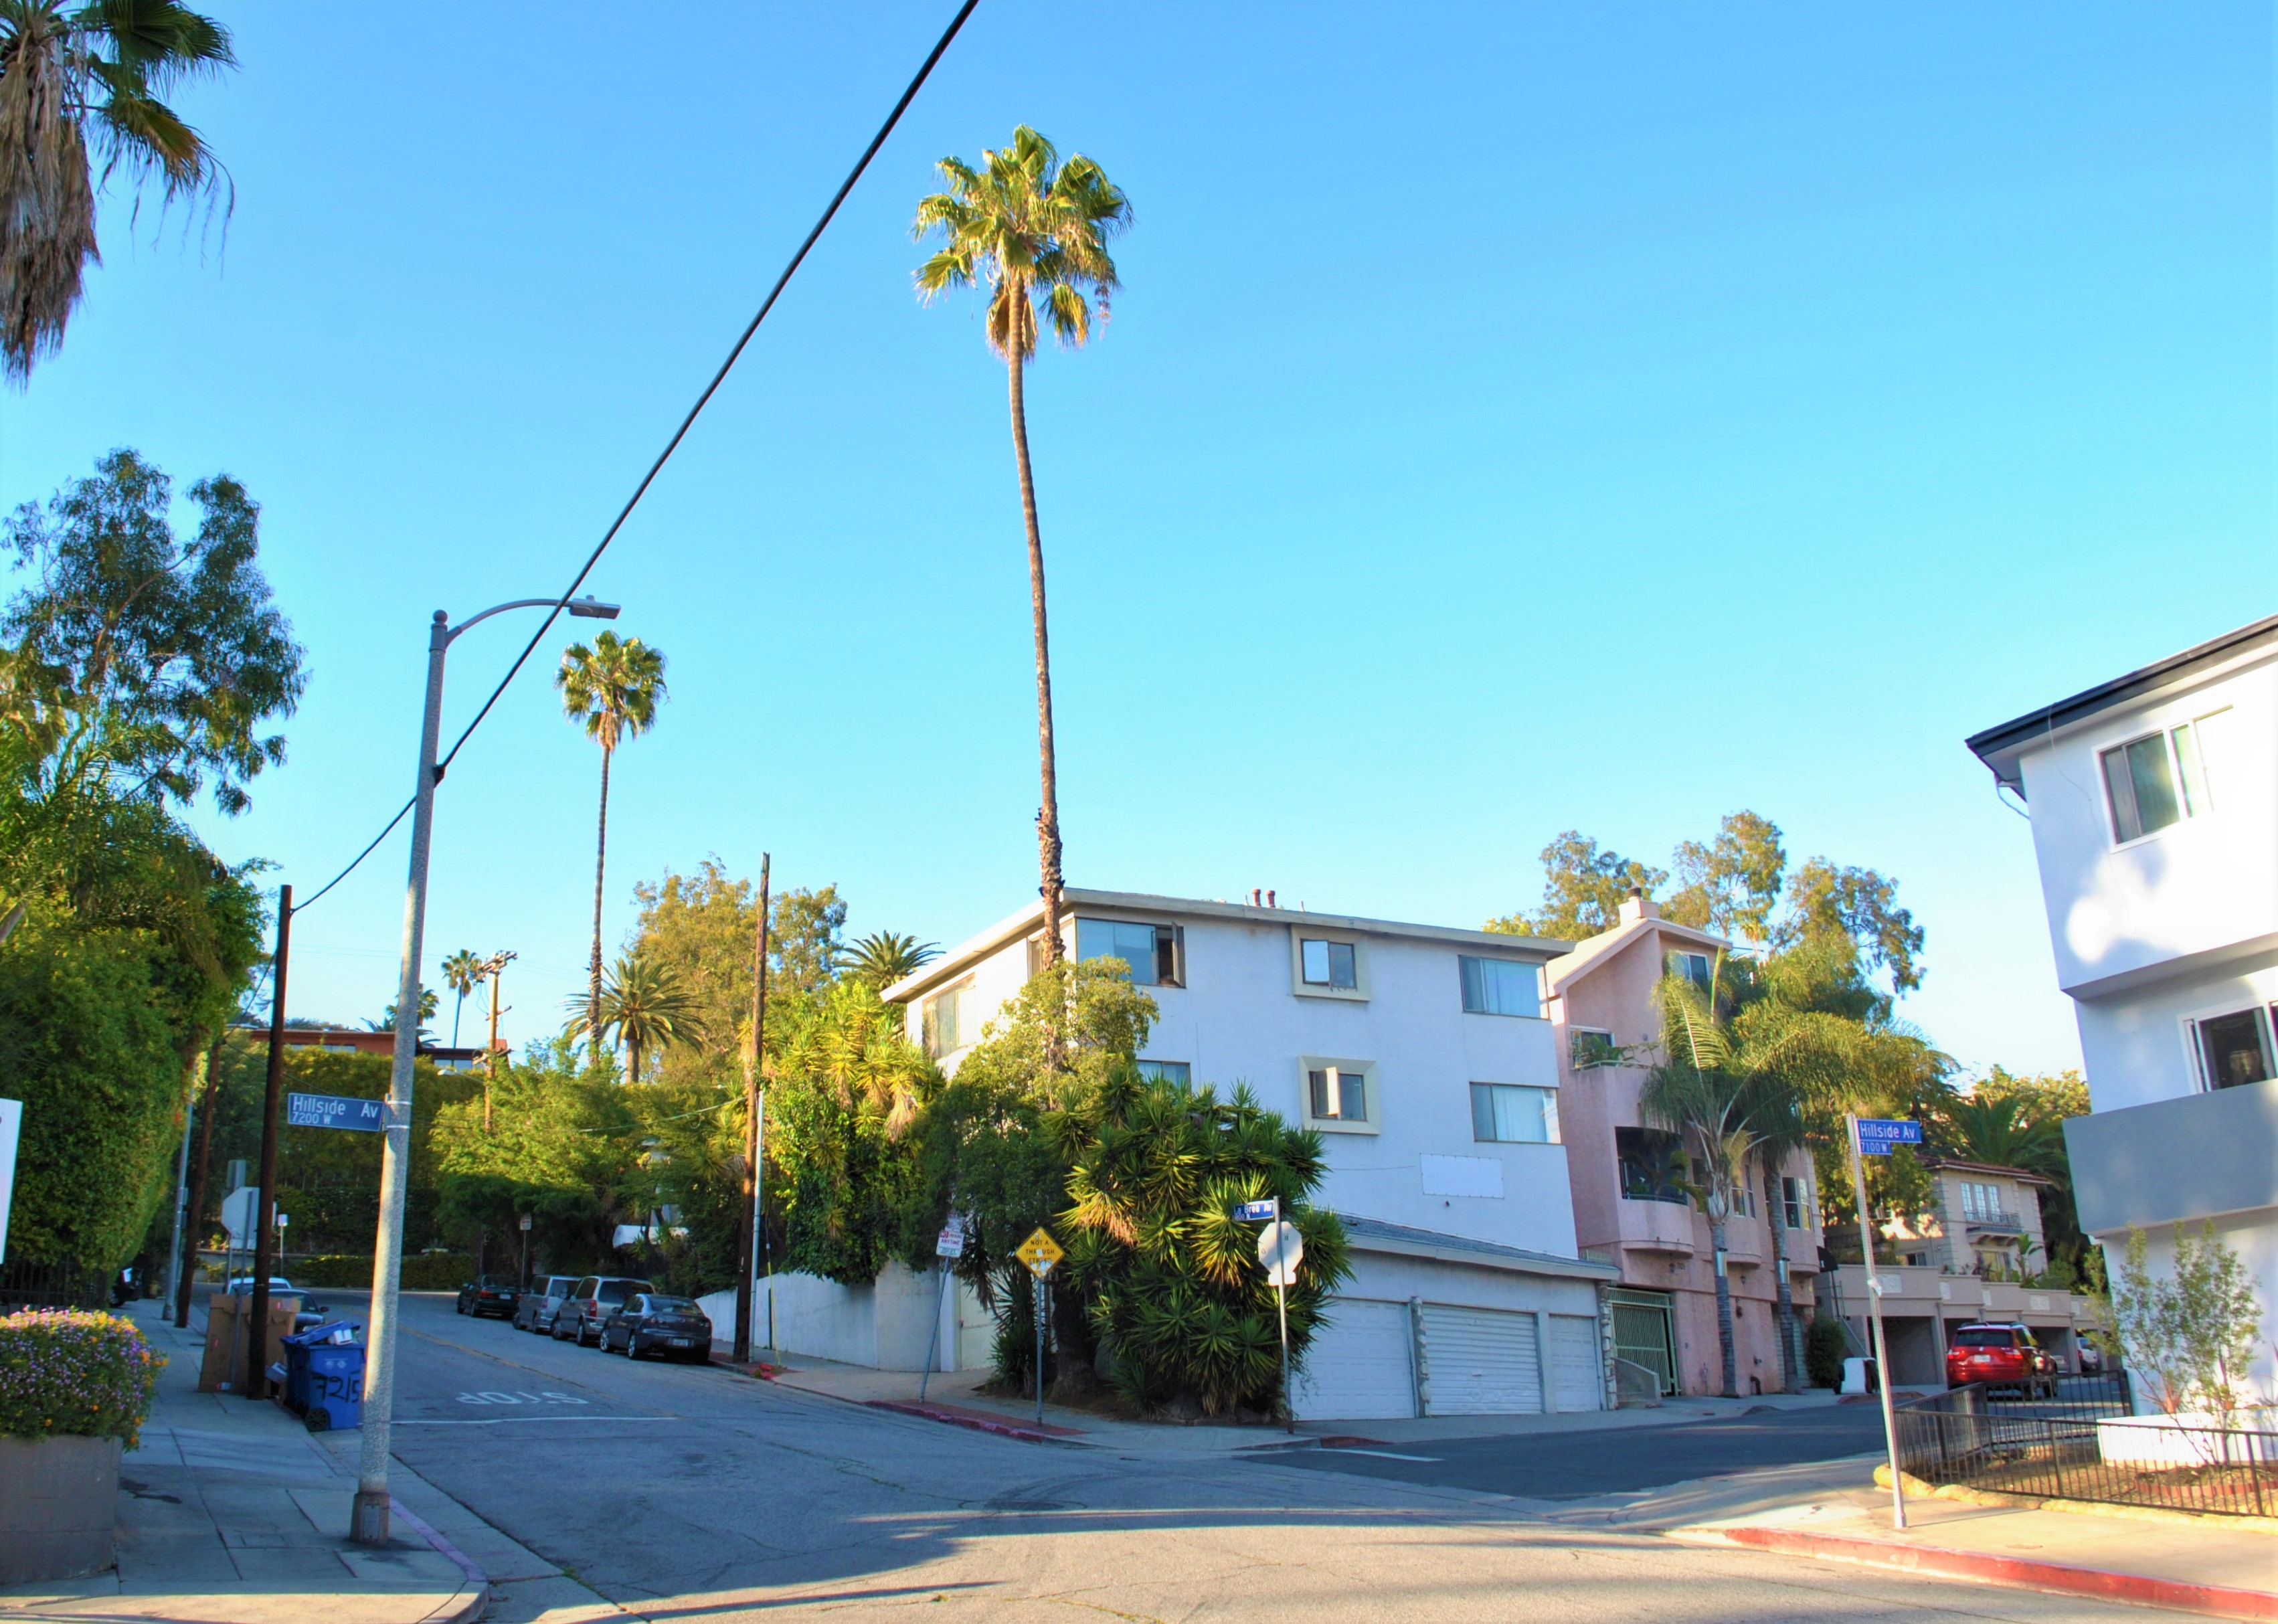 Apartments in Hollywood